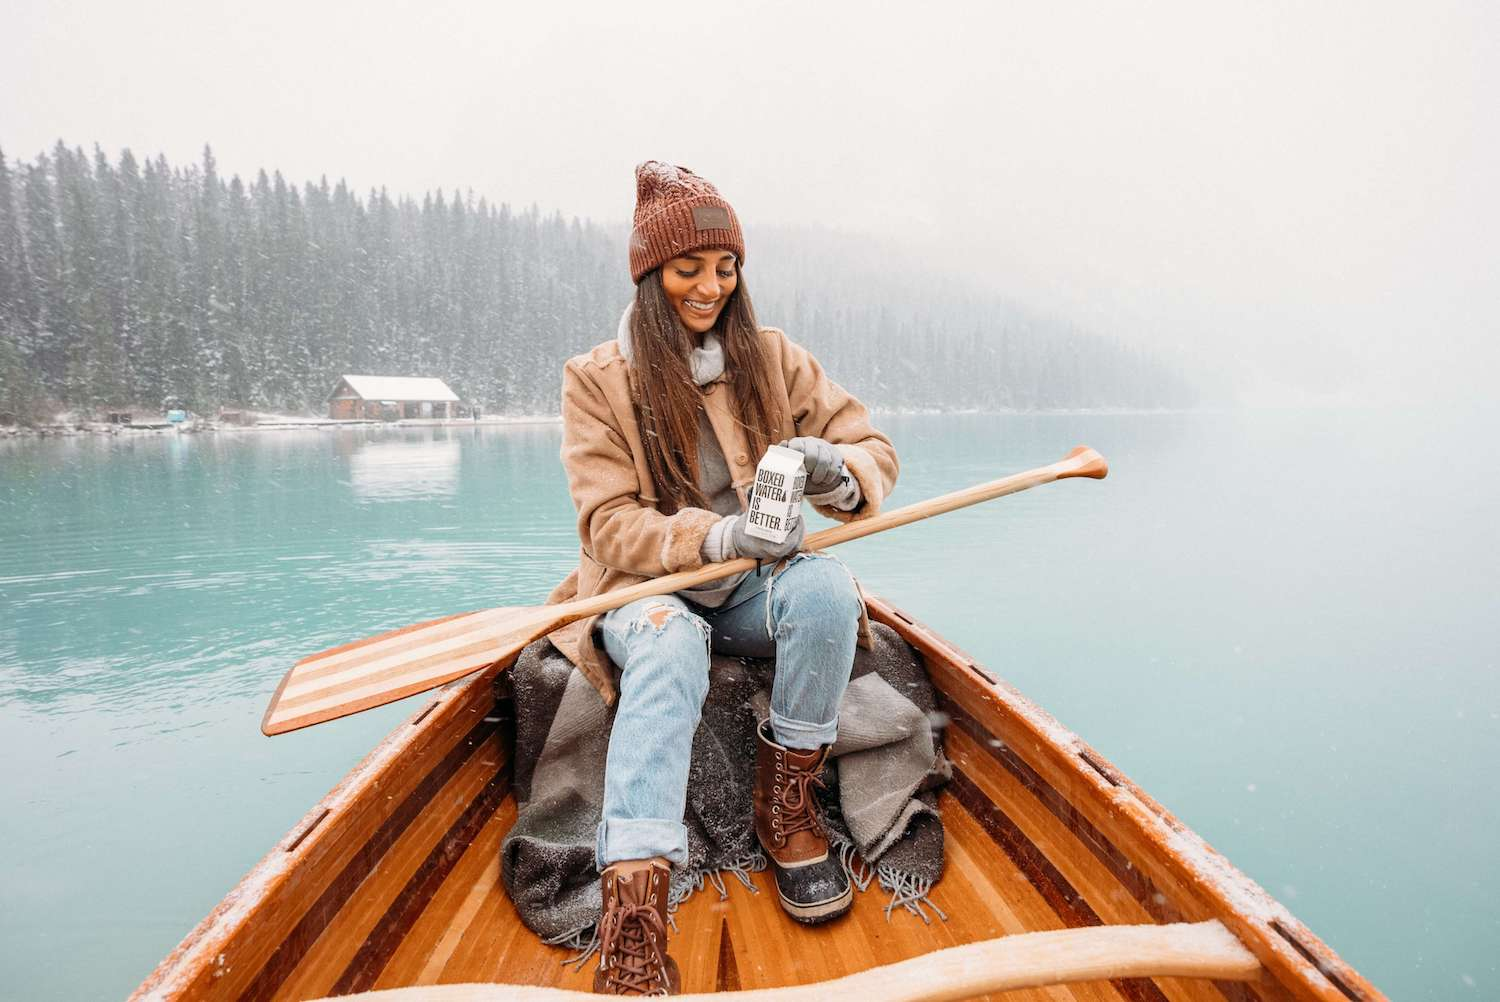 Young woman drinking boxed water in a little boat, snowing.